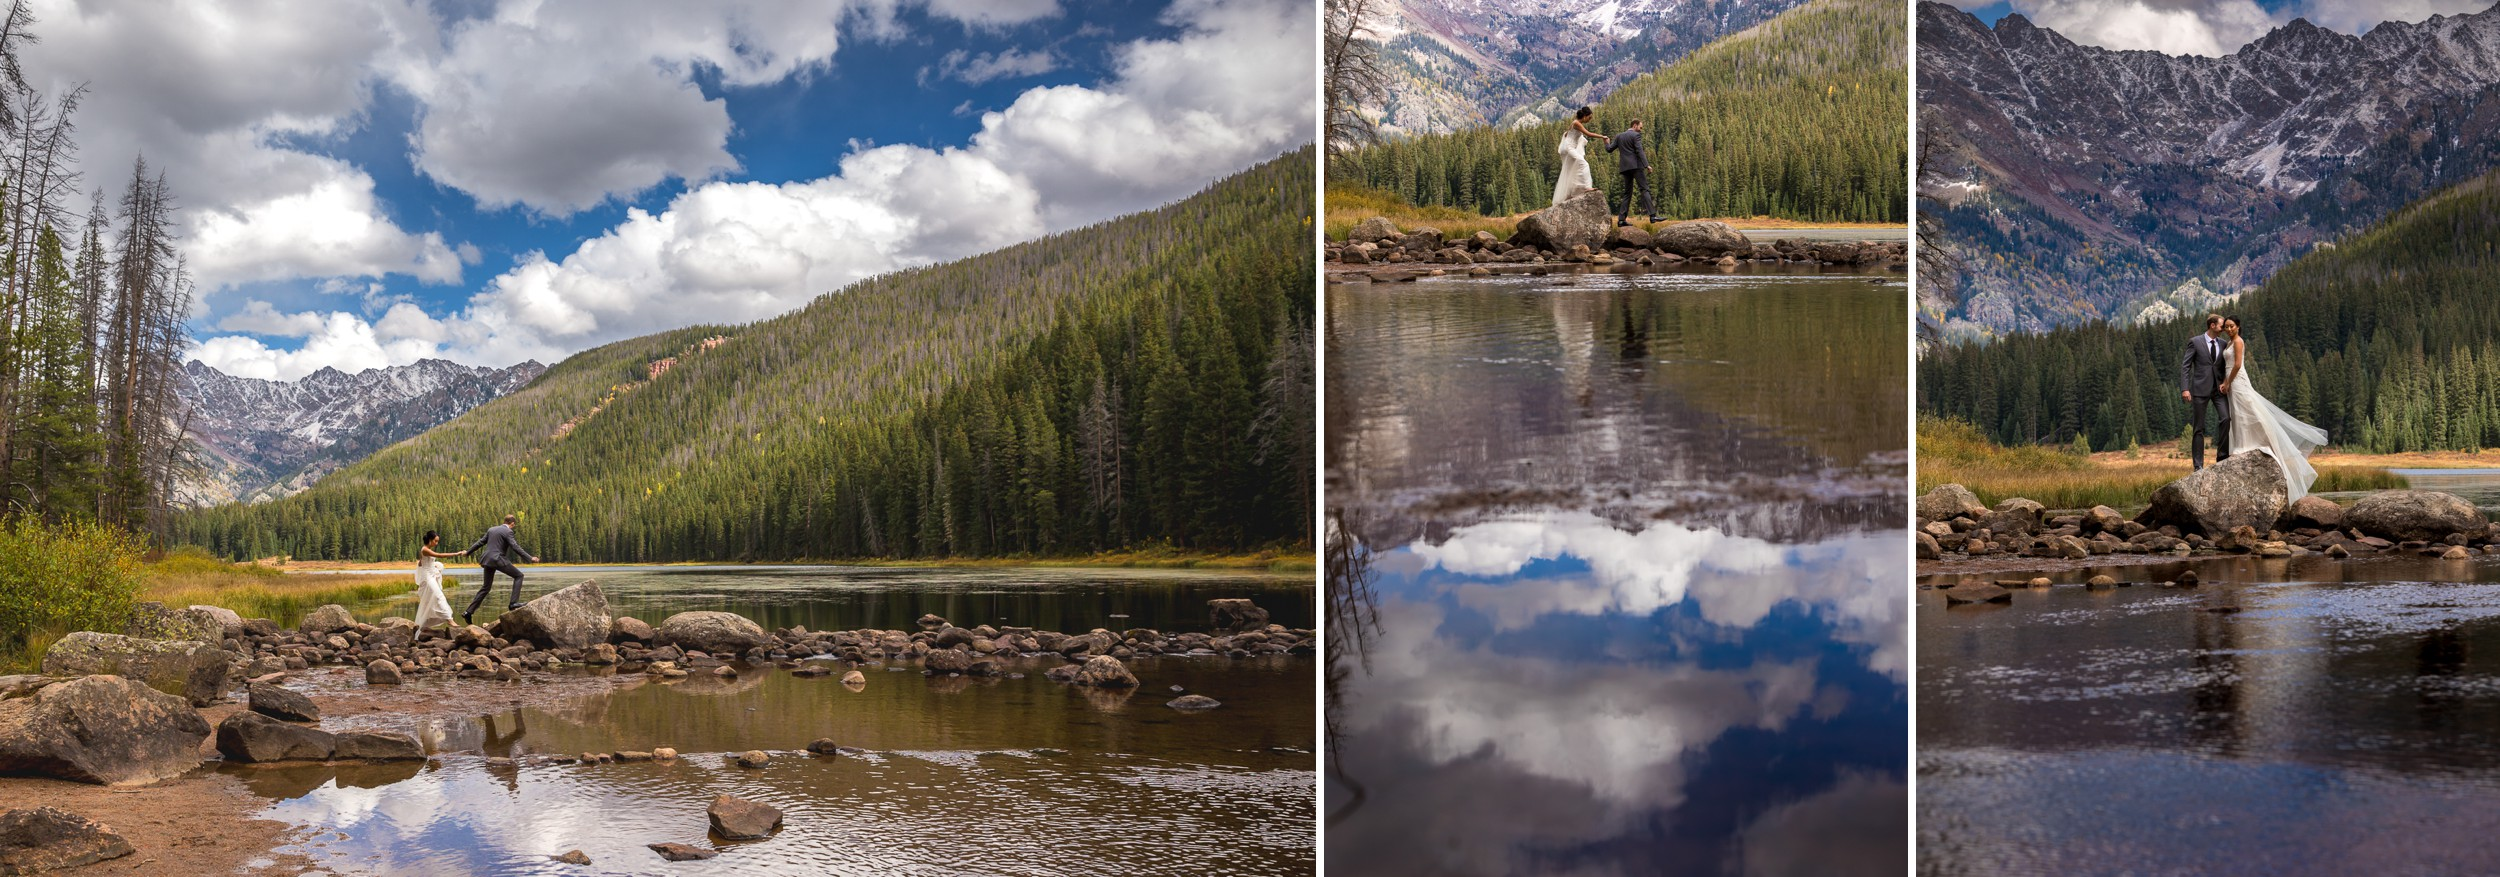 Piney_River_Ranch_Vail_Wedding_Photographer_Kristopher_Lindsay_ 8.jpg